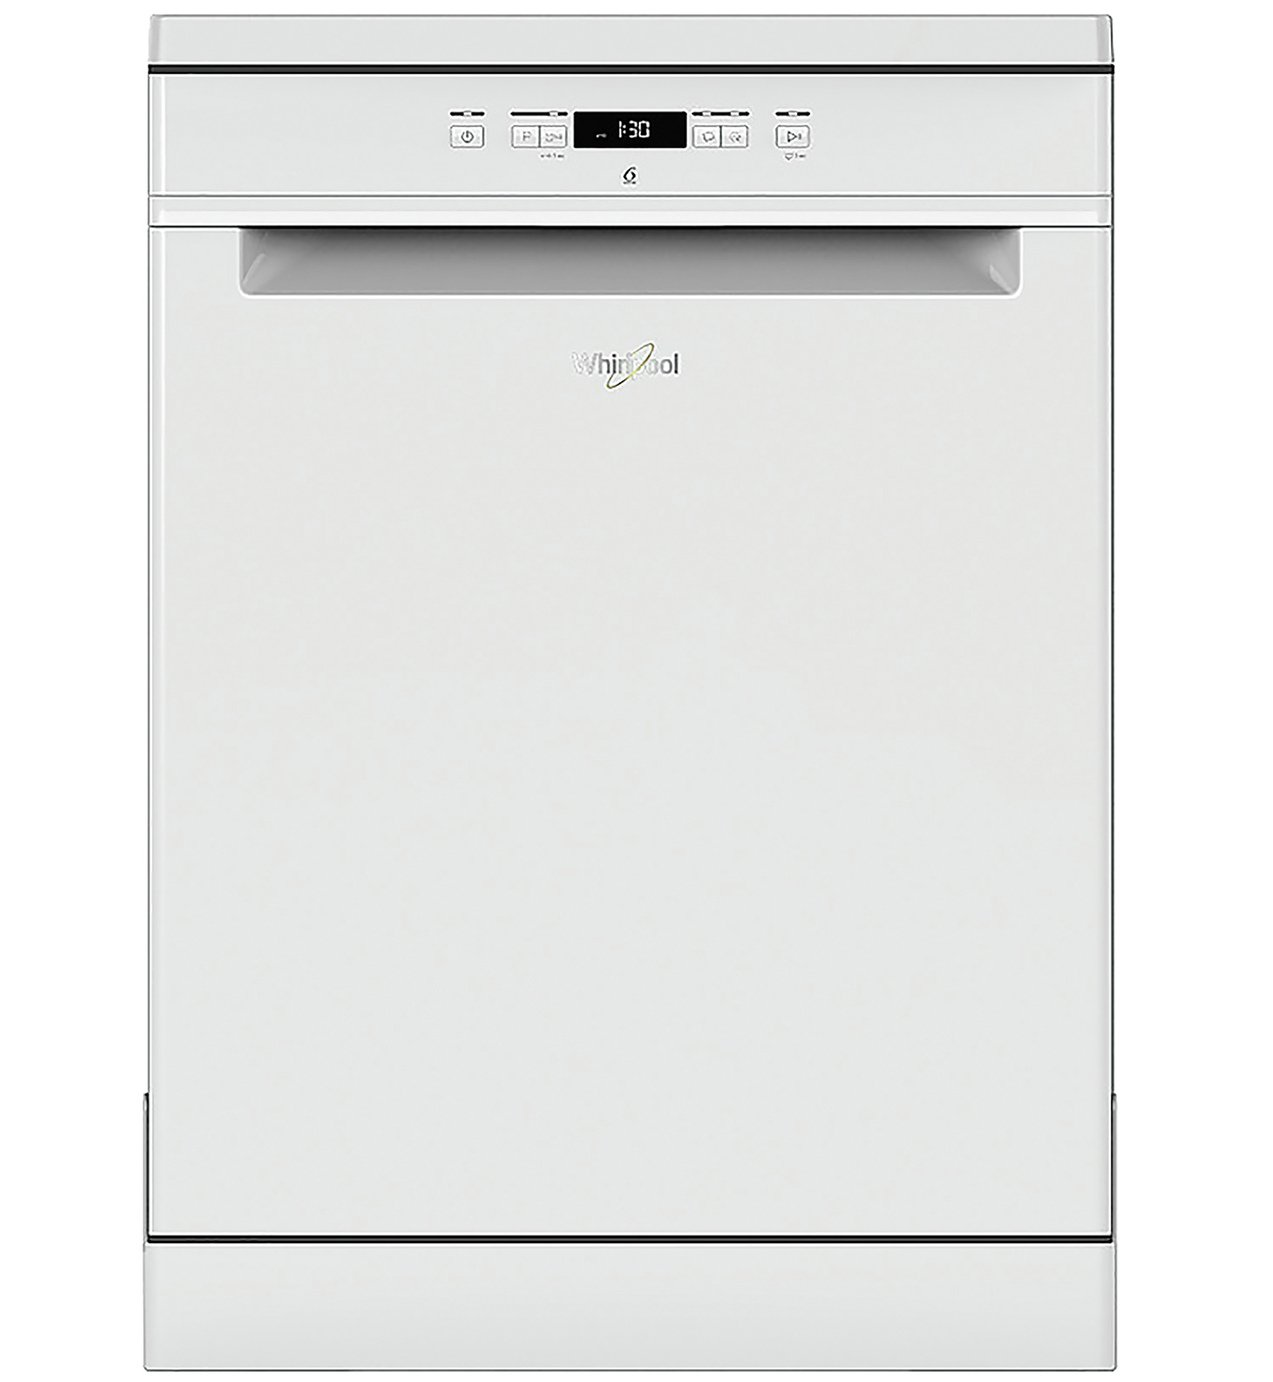 Whirlpool WFC 3B19 UK Full Size Dishwasher - White